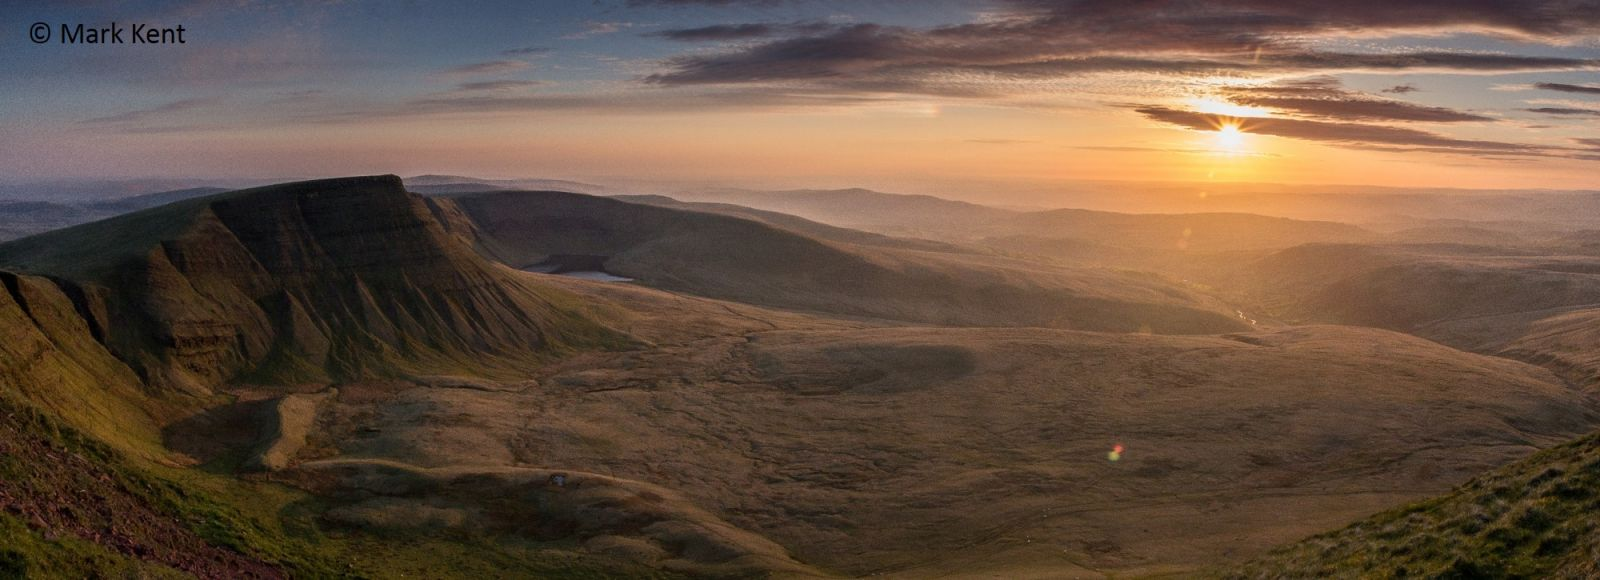 Mark Kent's winning photo of the Brecon Beacons